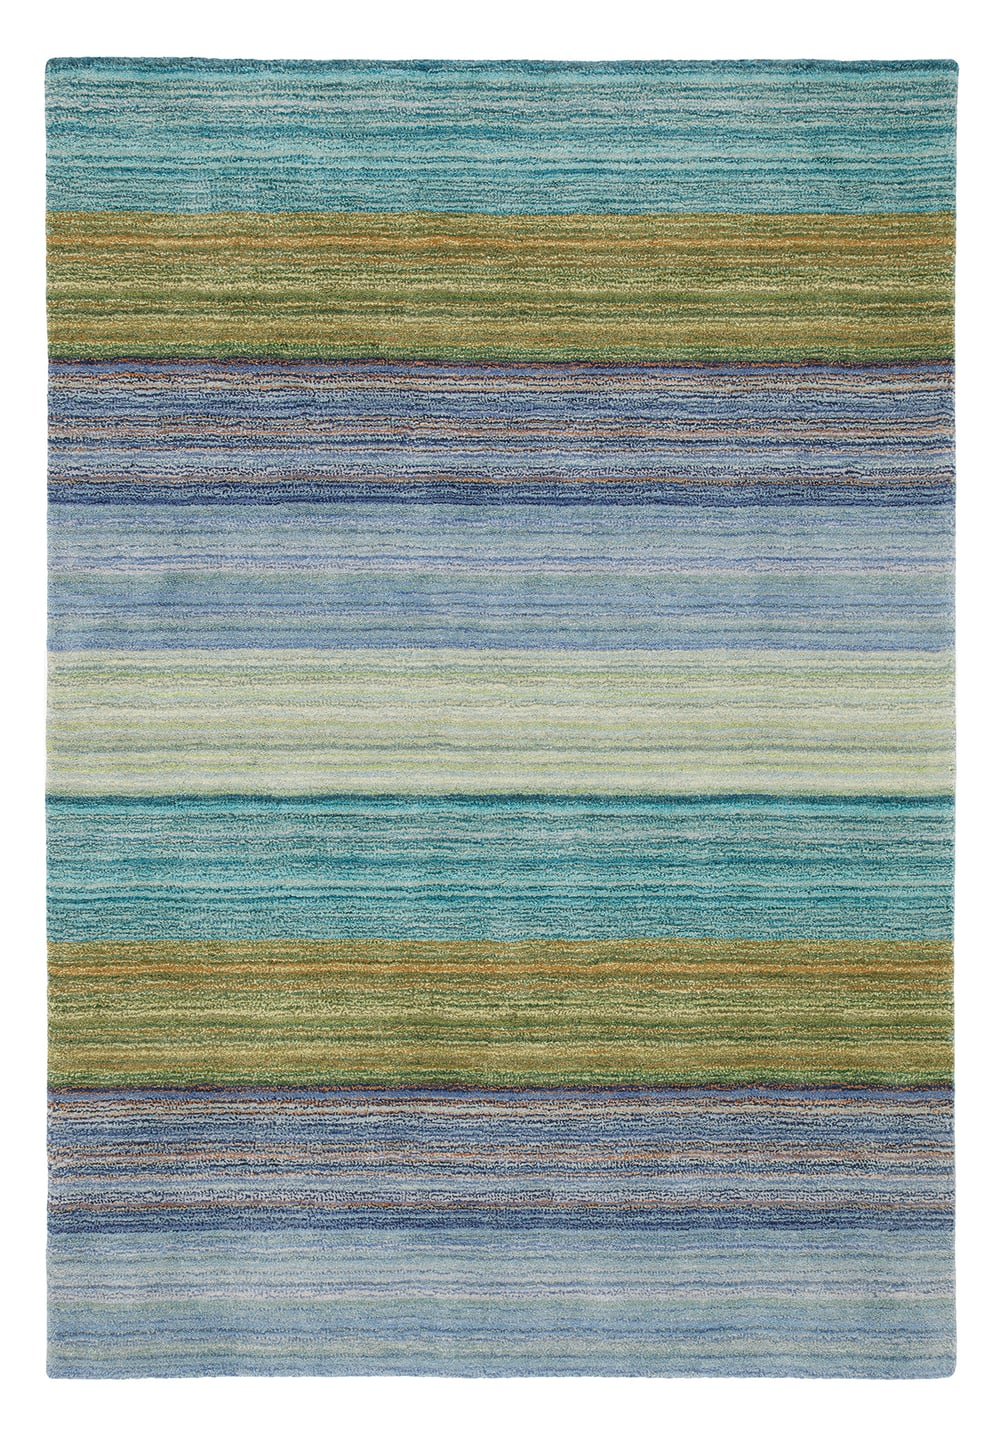 unique Decorative Design company c rugs with harmony colors for indoor or outdoor ideas